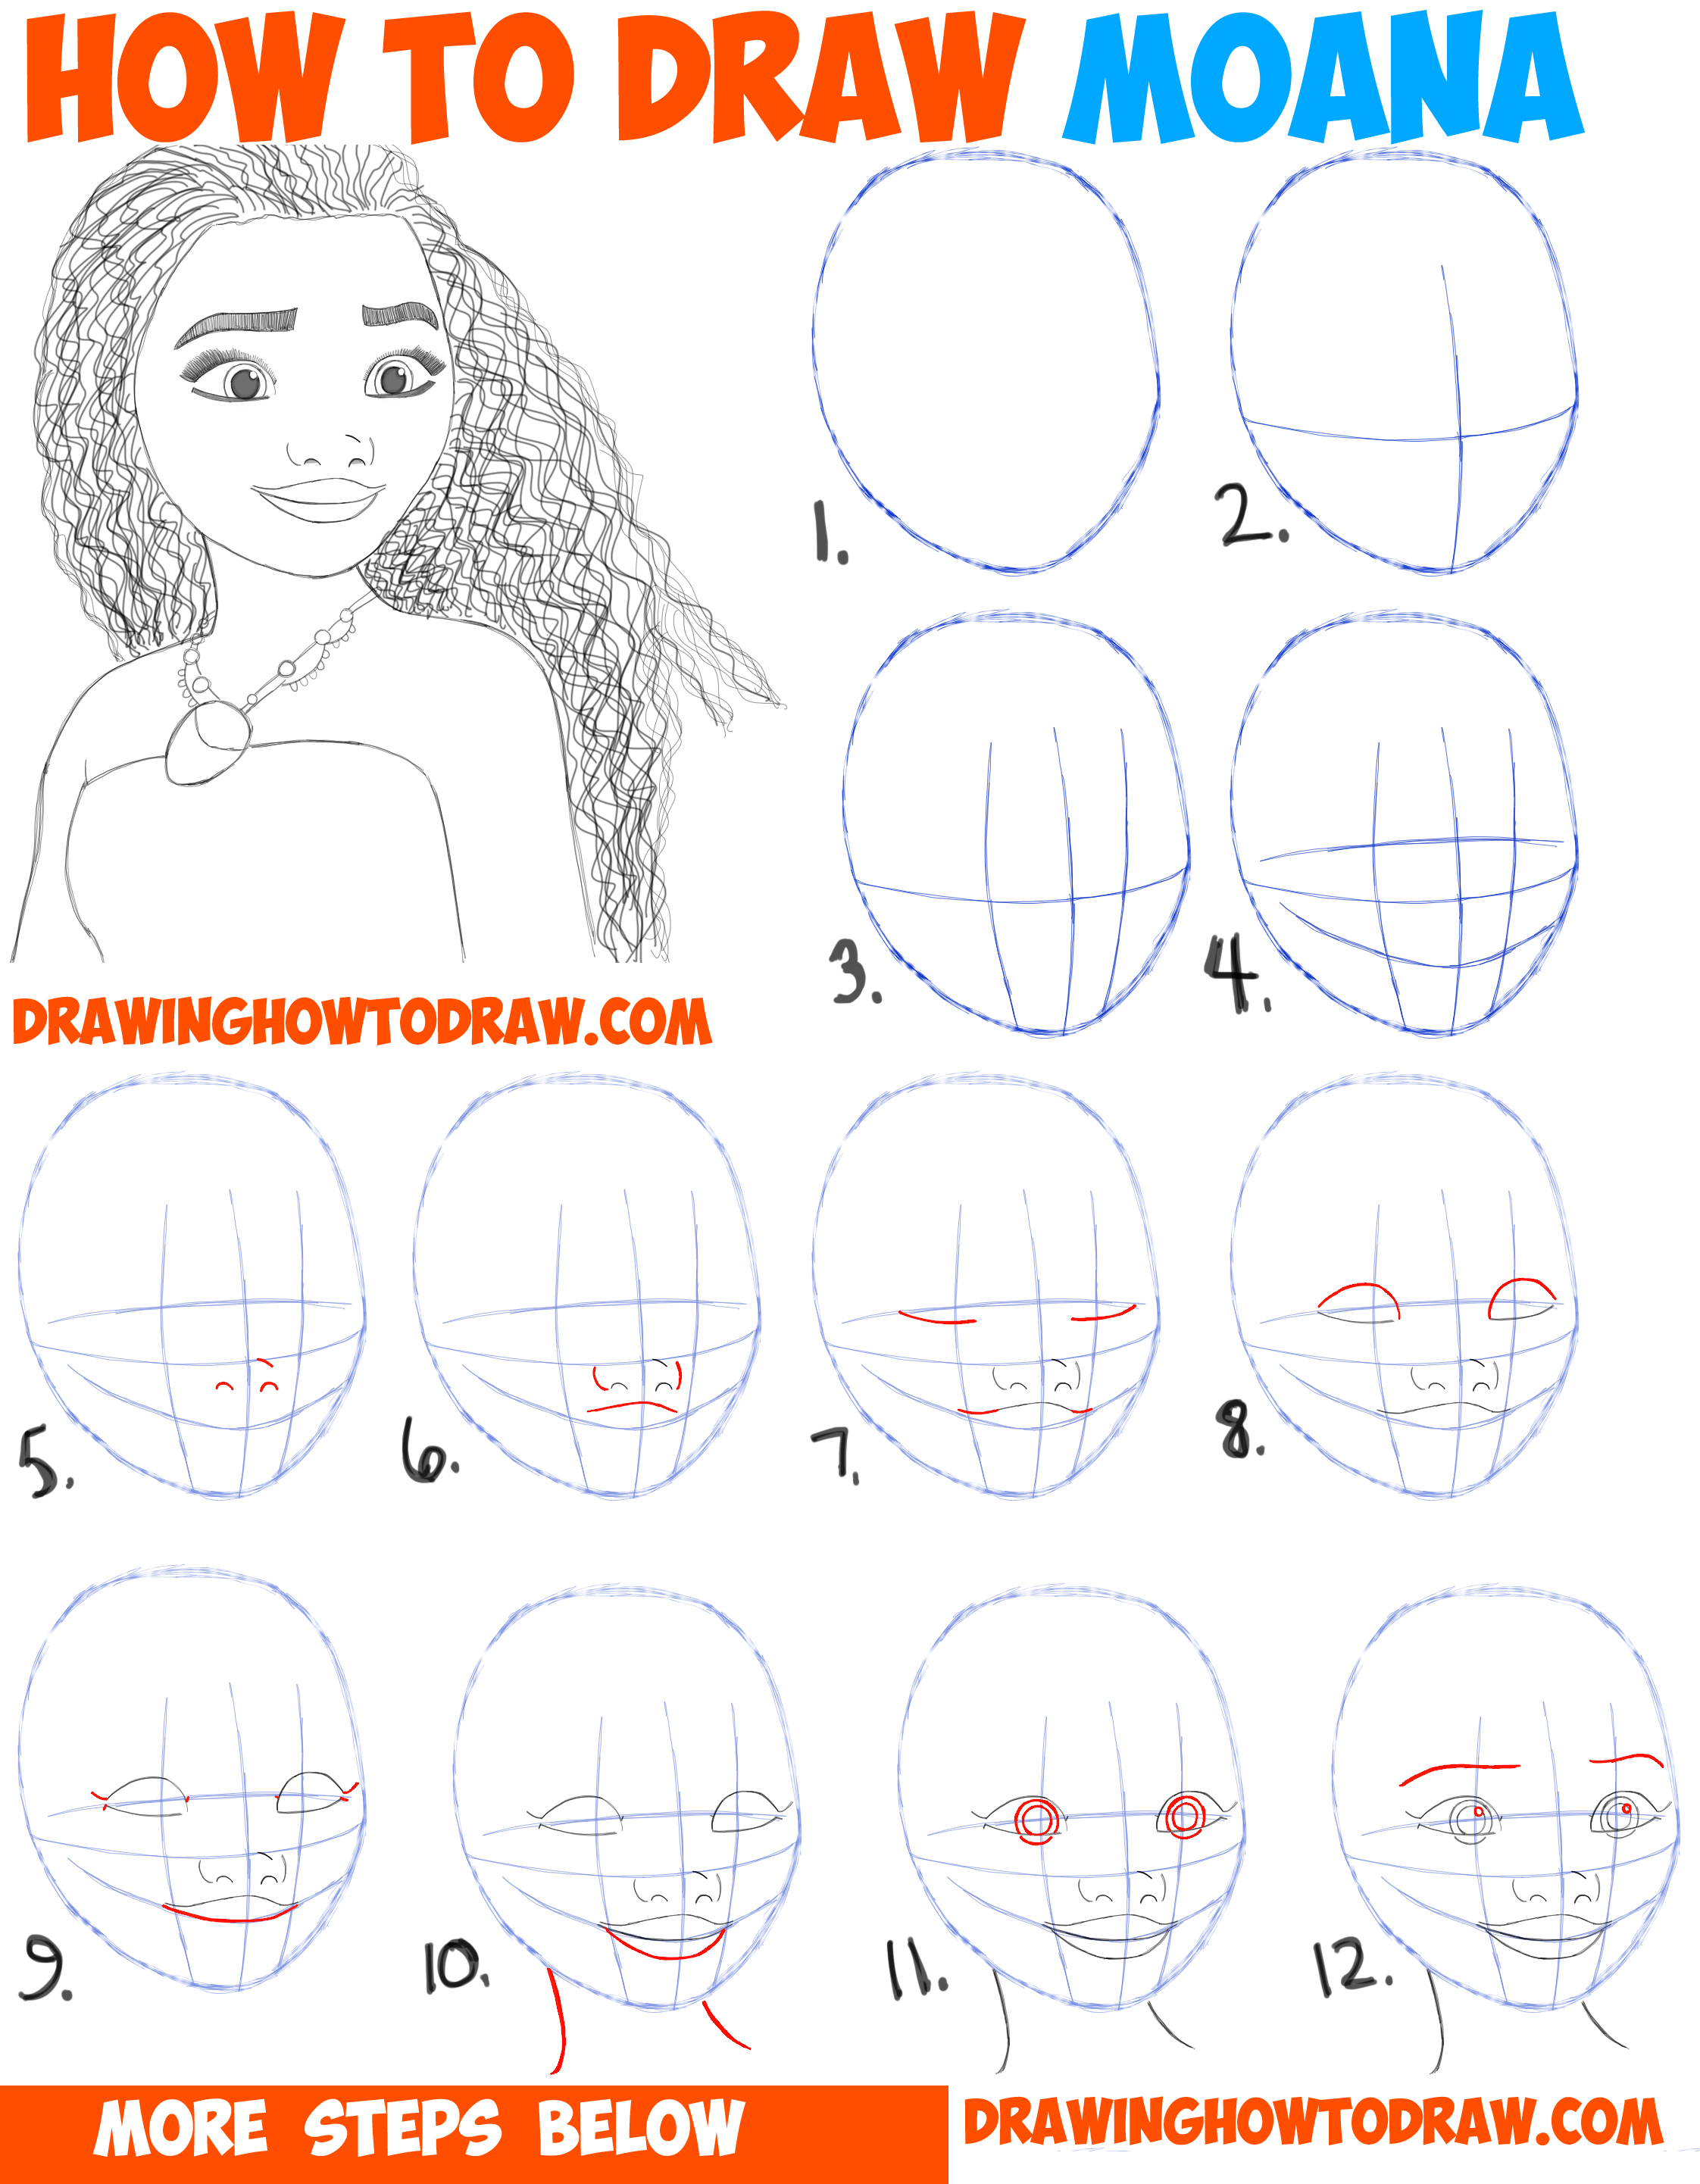 How to draw moana easy step by step drawing tutorial for for Easy drawing ideas for beginners